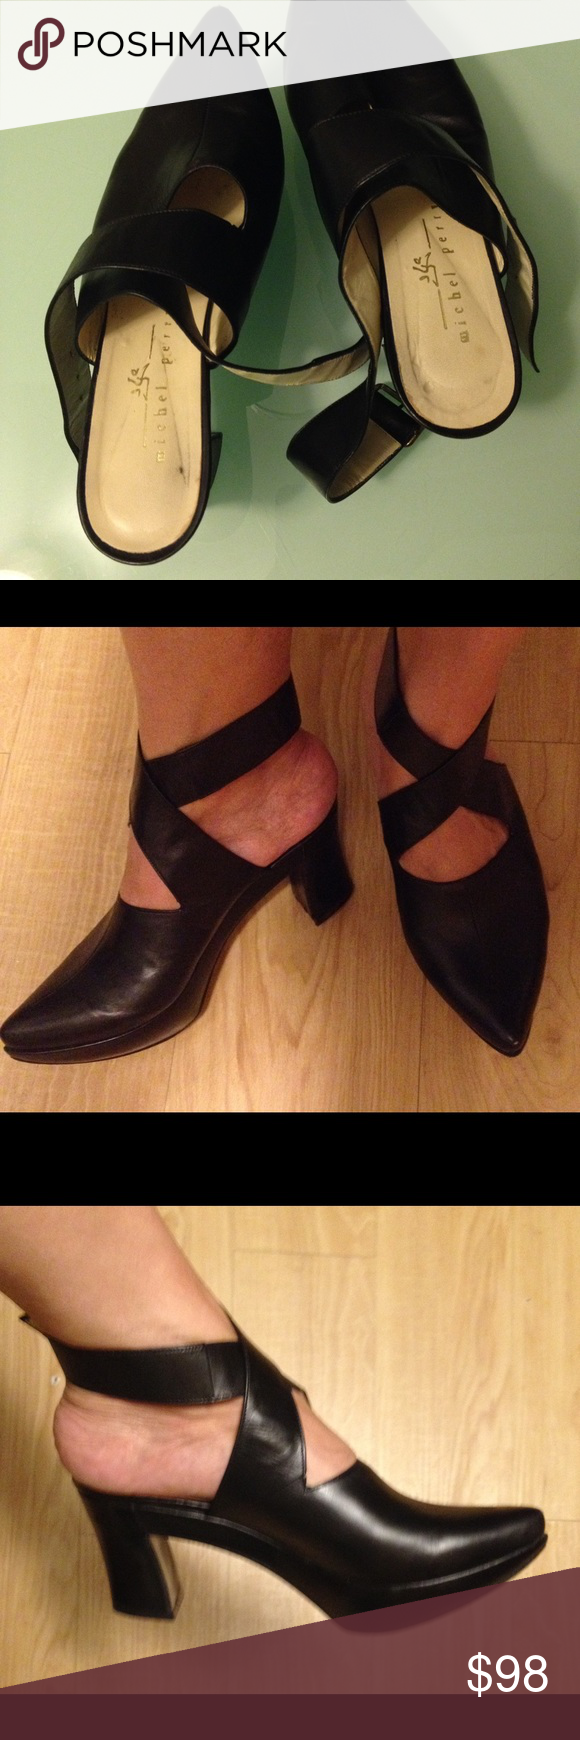 f7939c833d6b Michel Perry black leather platform shoes Vintage Michel Perry very typical  of designs from early 90 s